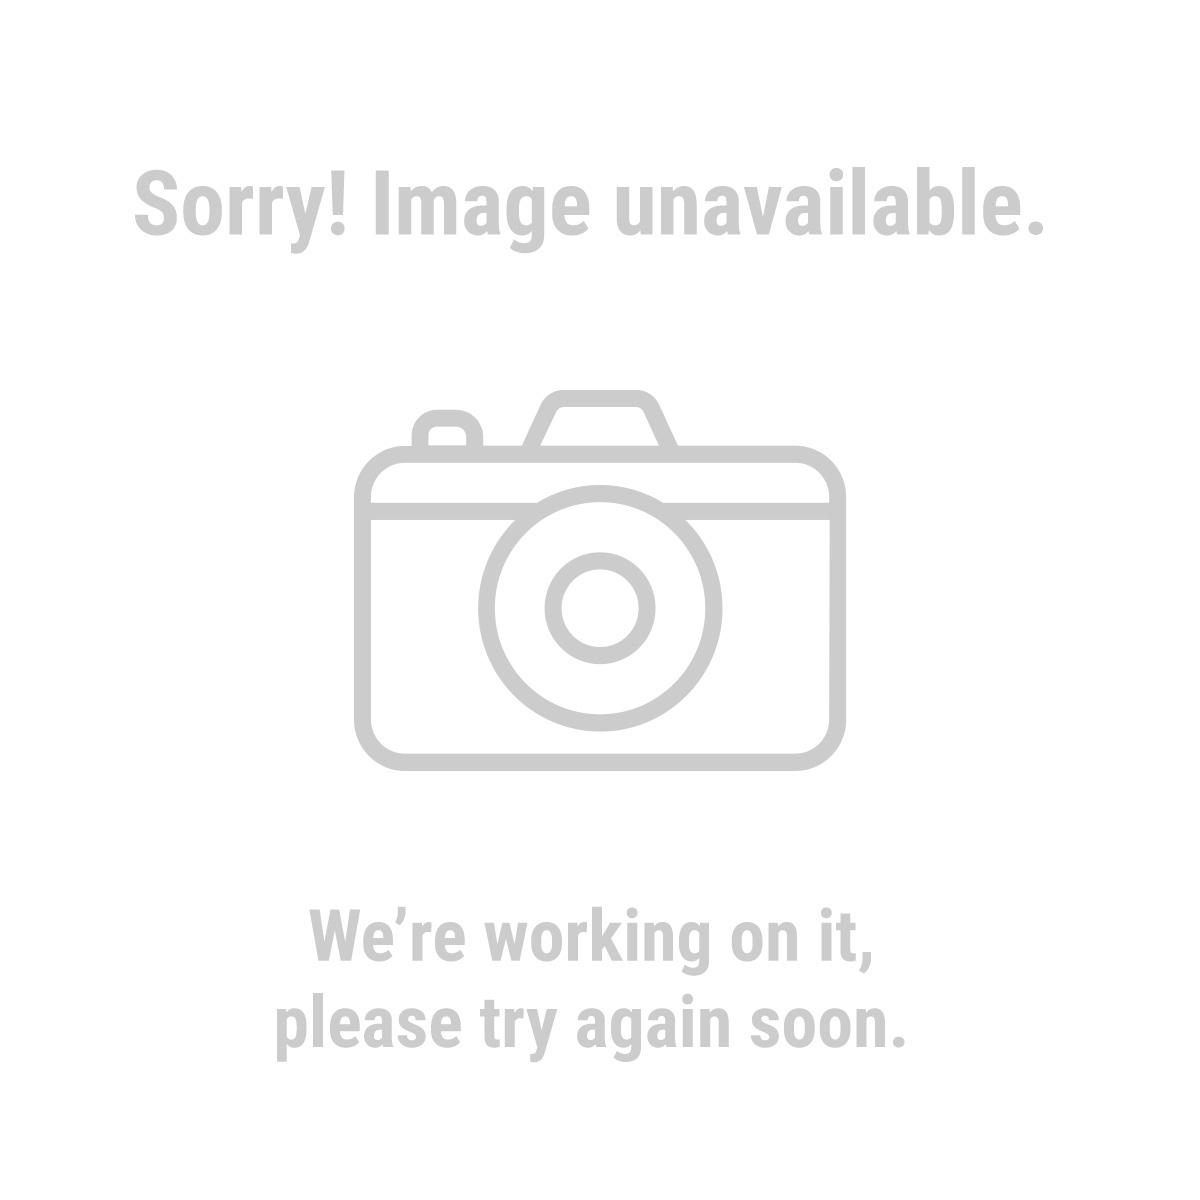 HFT® 61569 125 Volt, 15 Amp Male Plug Connector